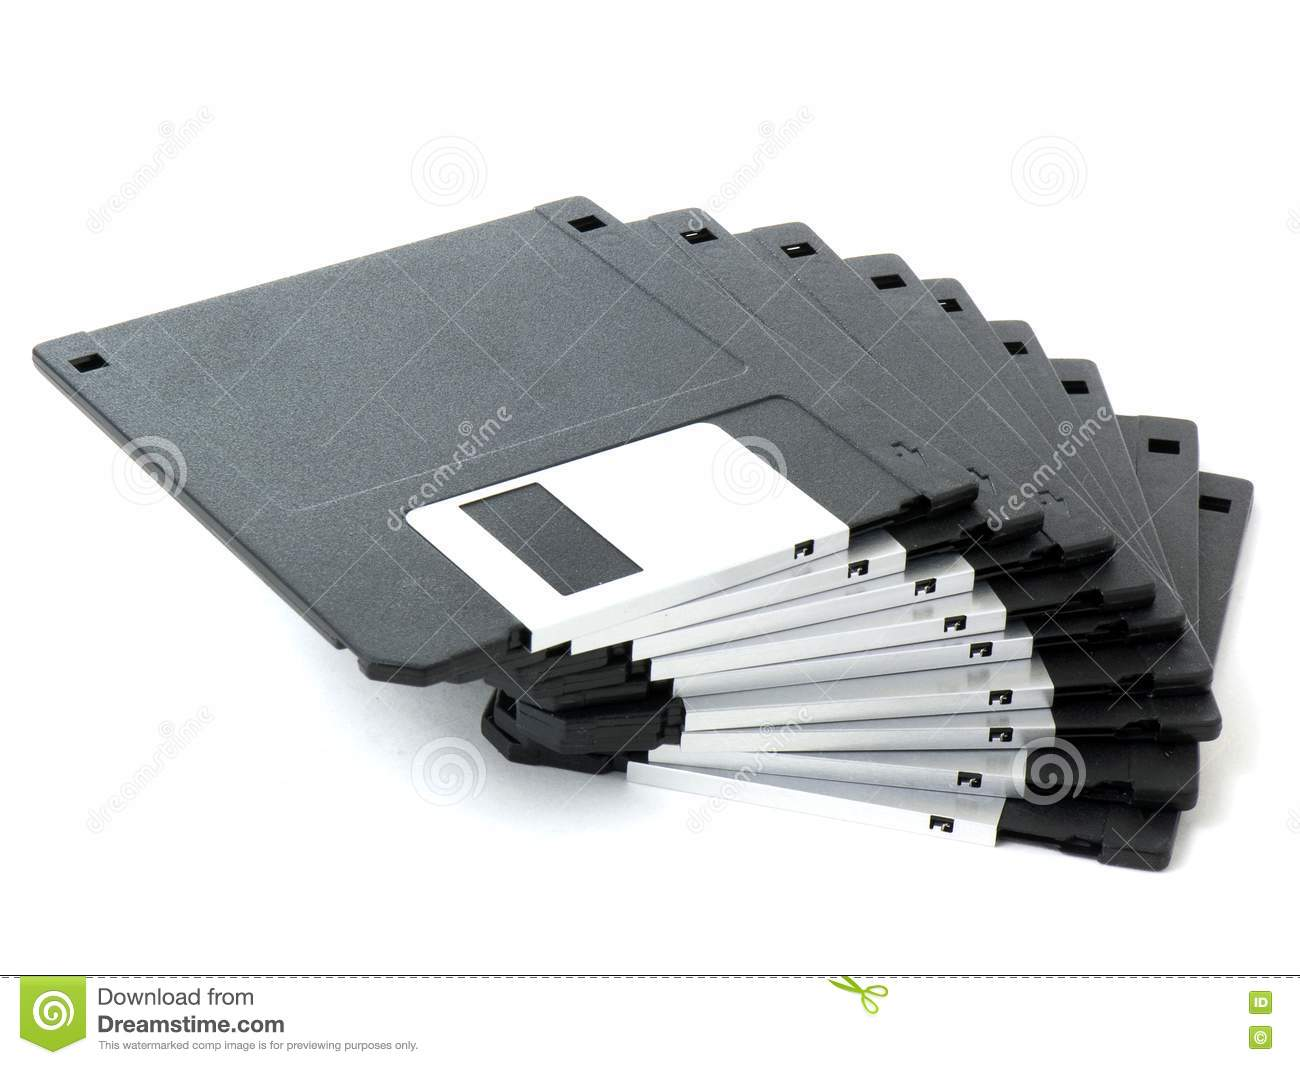 Floppy disks royalty free stock photography image 17838797 - Uses for old floppy disks ...